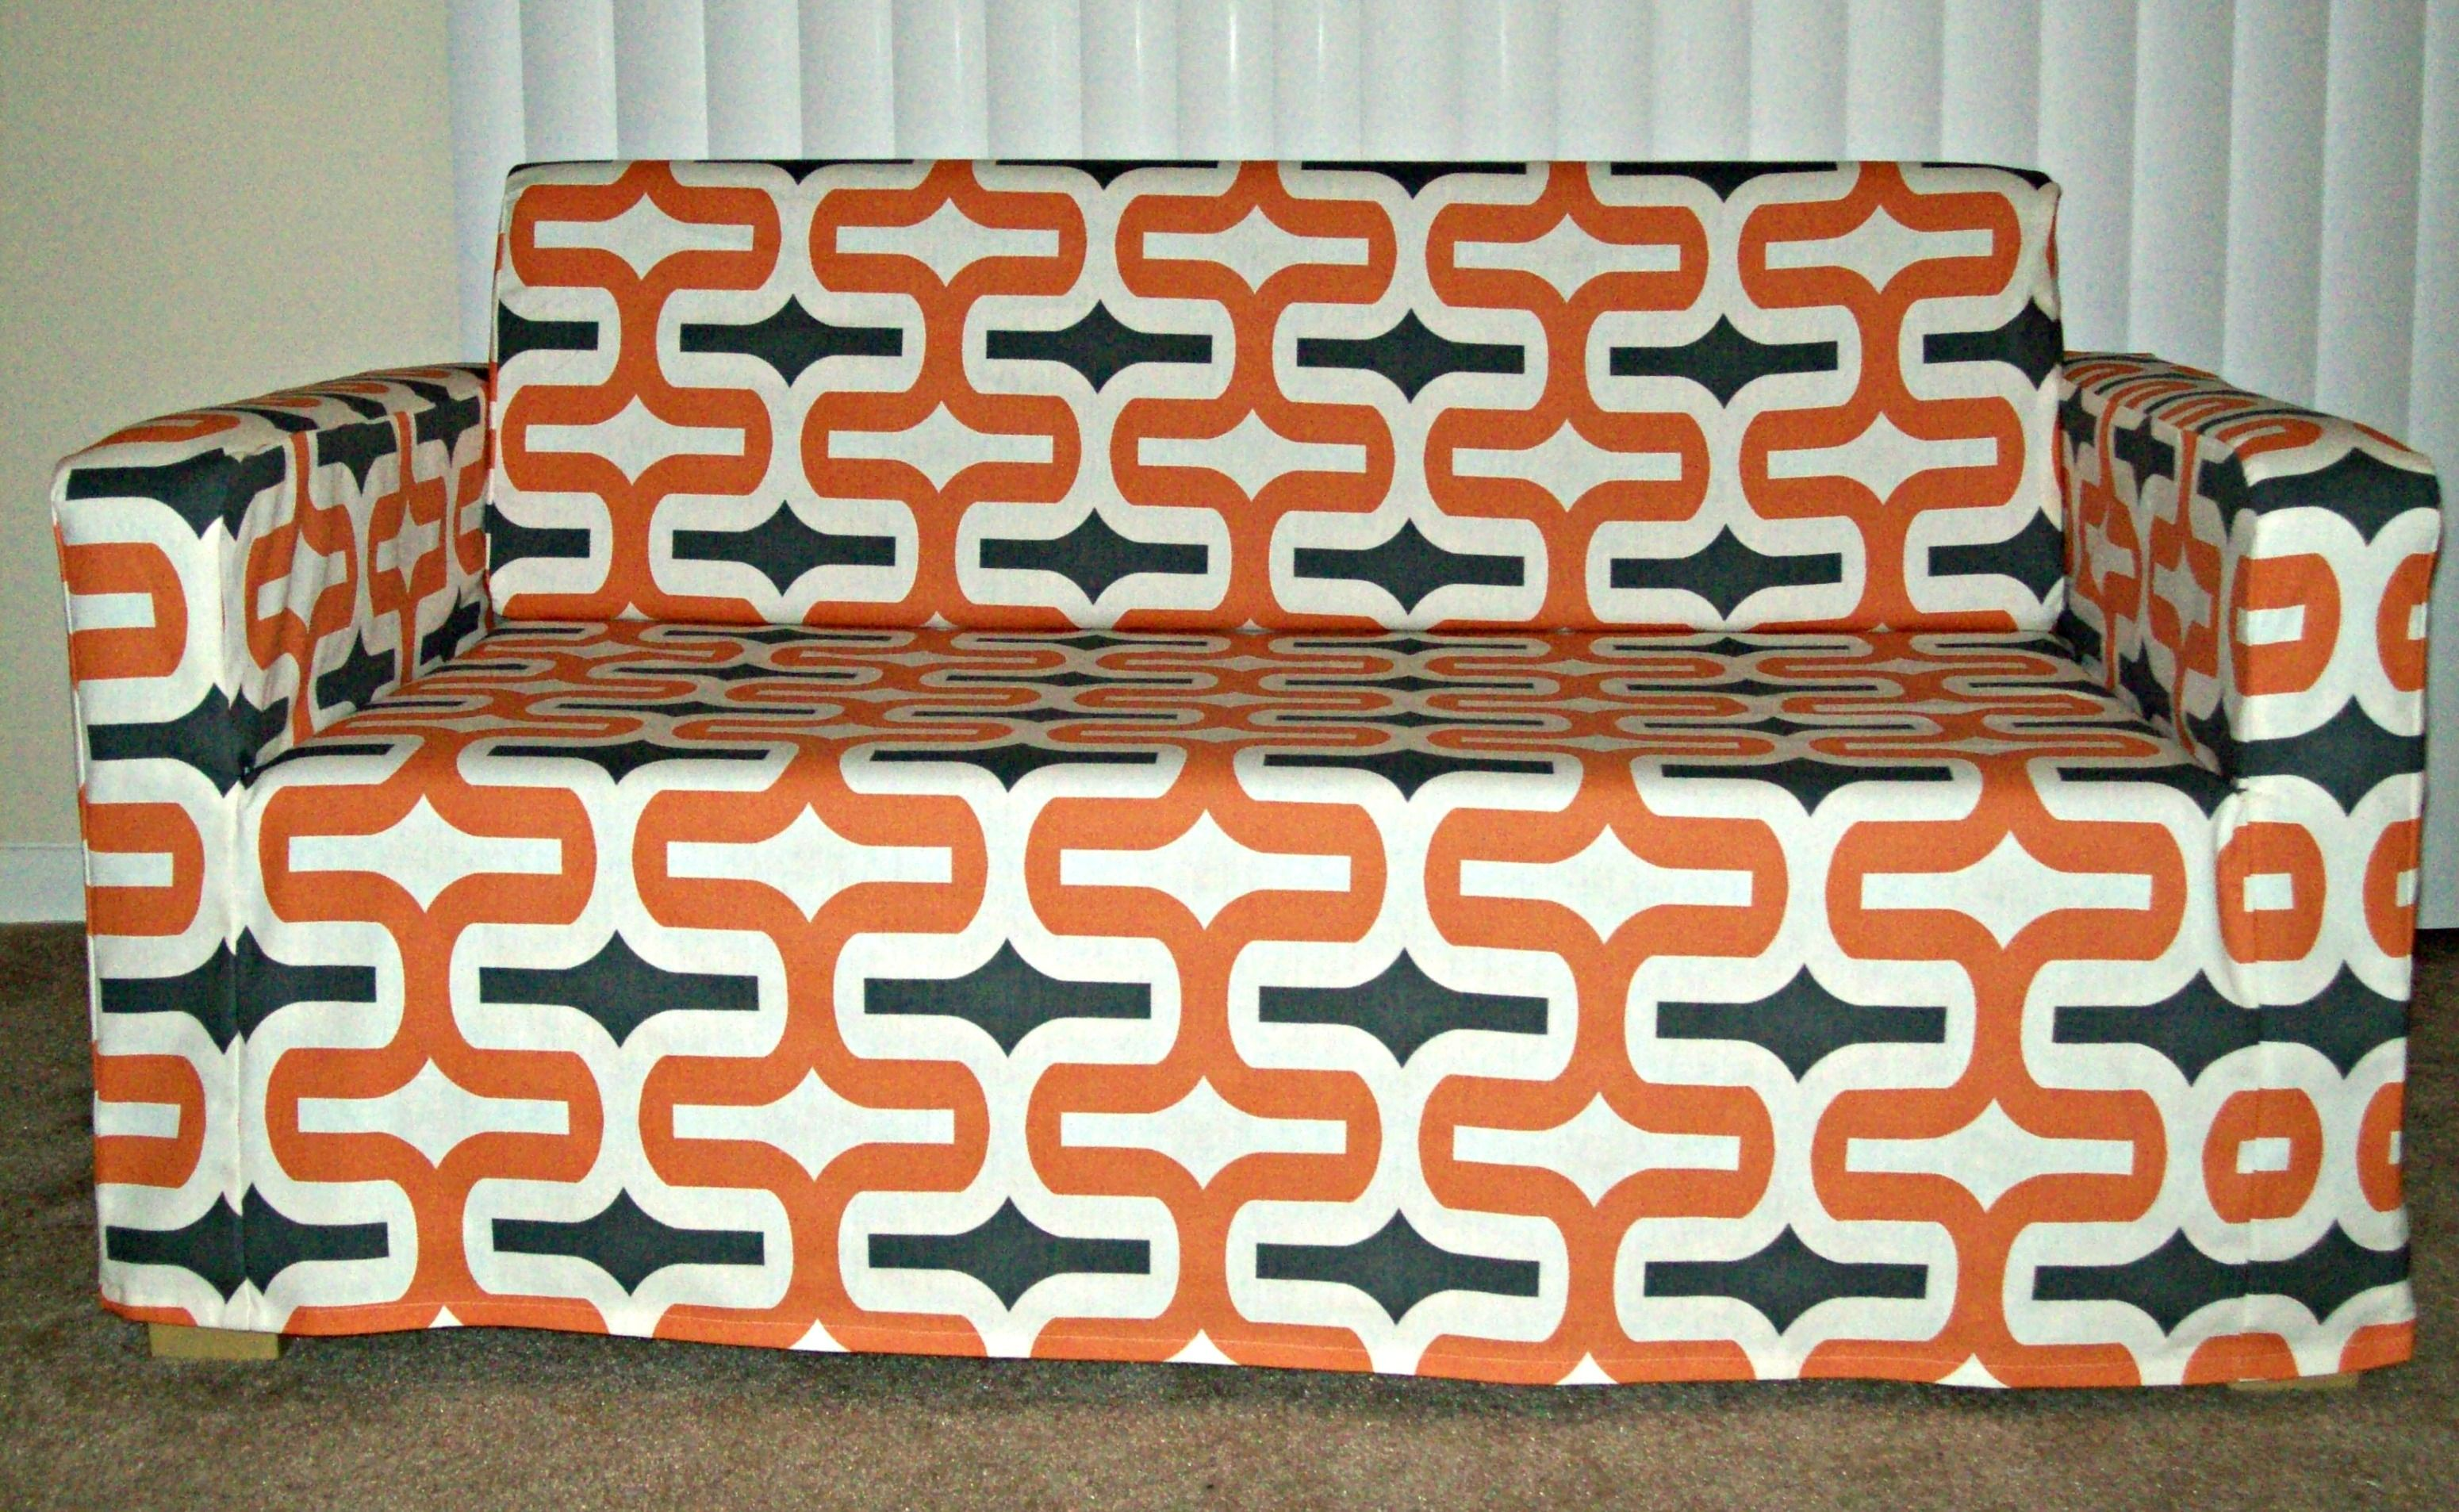 Custom Cover Made By Roozimsy Com For The Ikea Solsta Sofa Bed In Embrace Apache Macon Fabric Pattern Solsta Sofa Bed Home Decor Sofa Bed